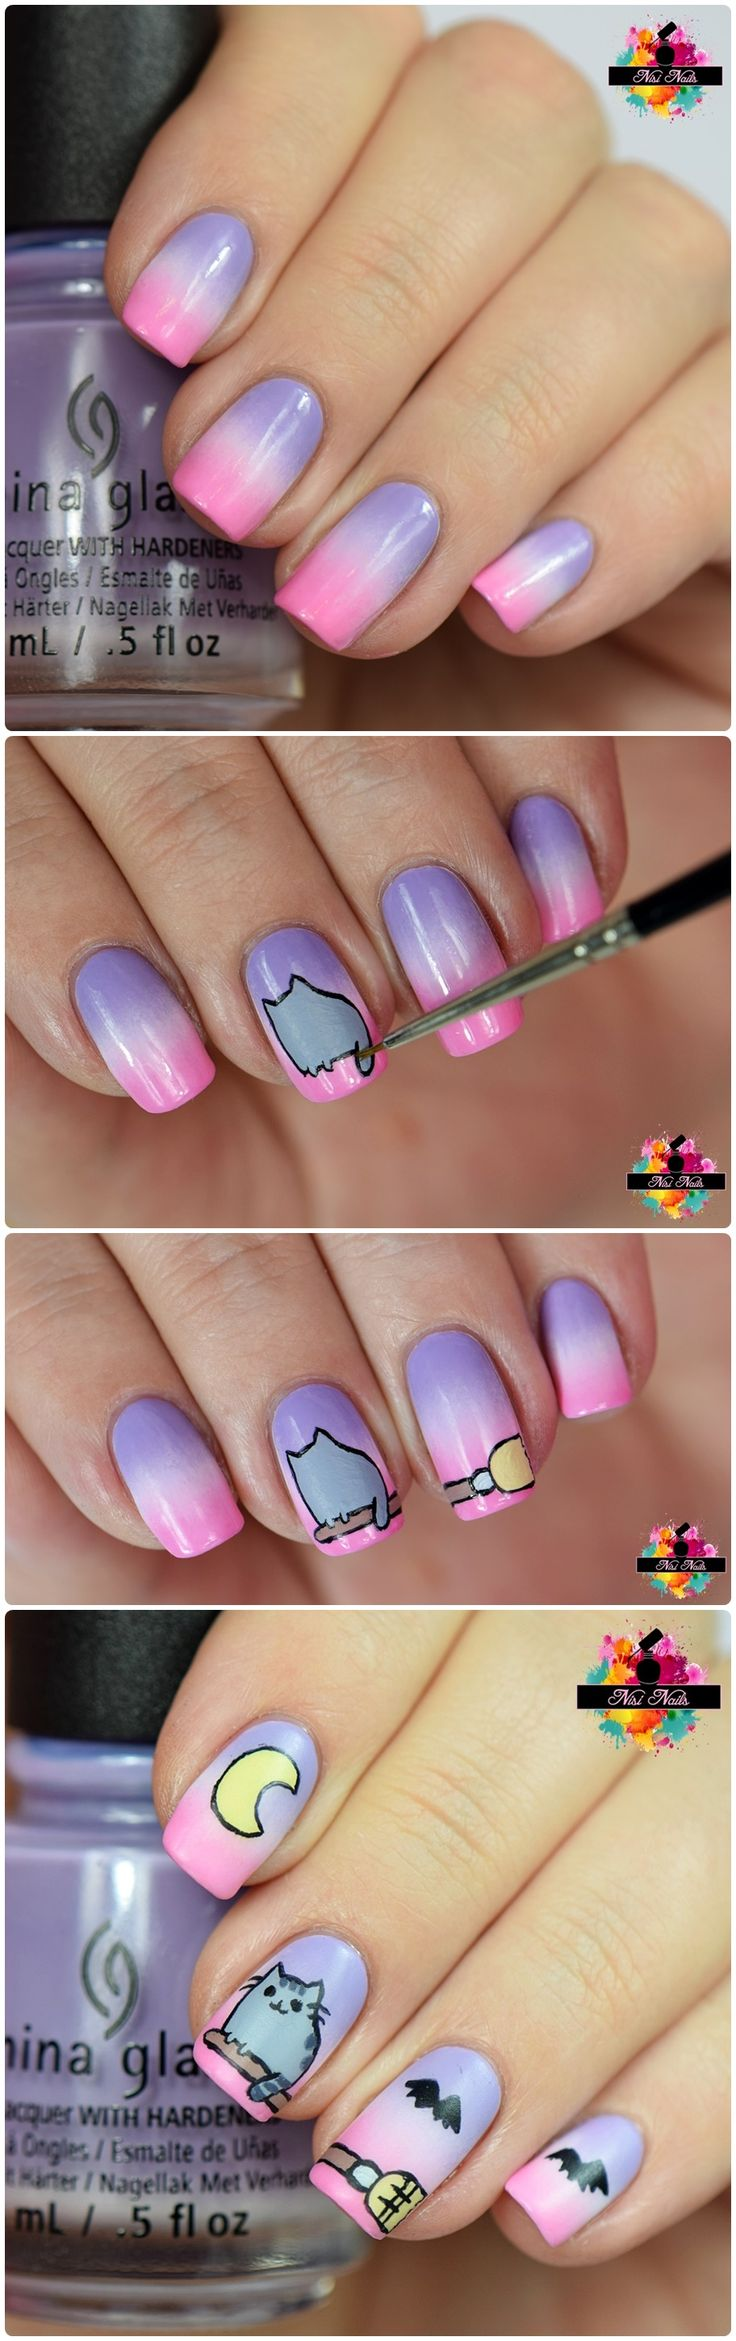 Pusheen Nails | nisinails.de | Pusheen Nageldesign 2016 | Halloween Pusheen Nail Art